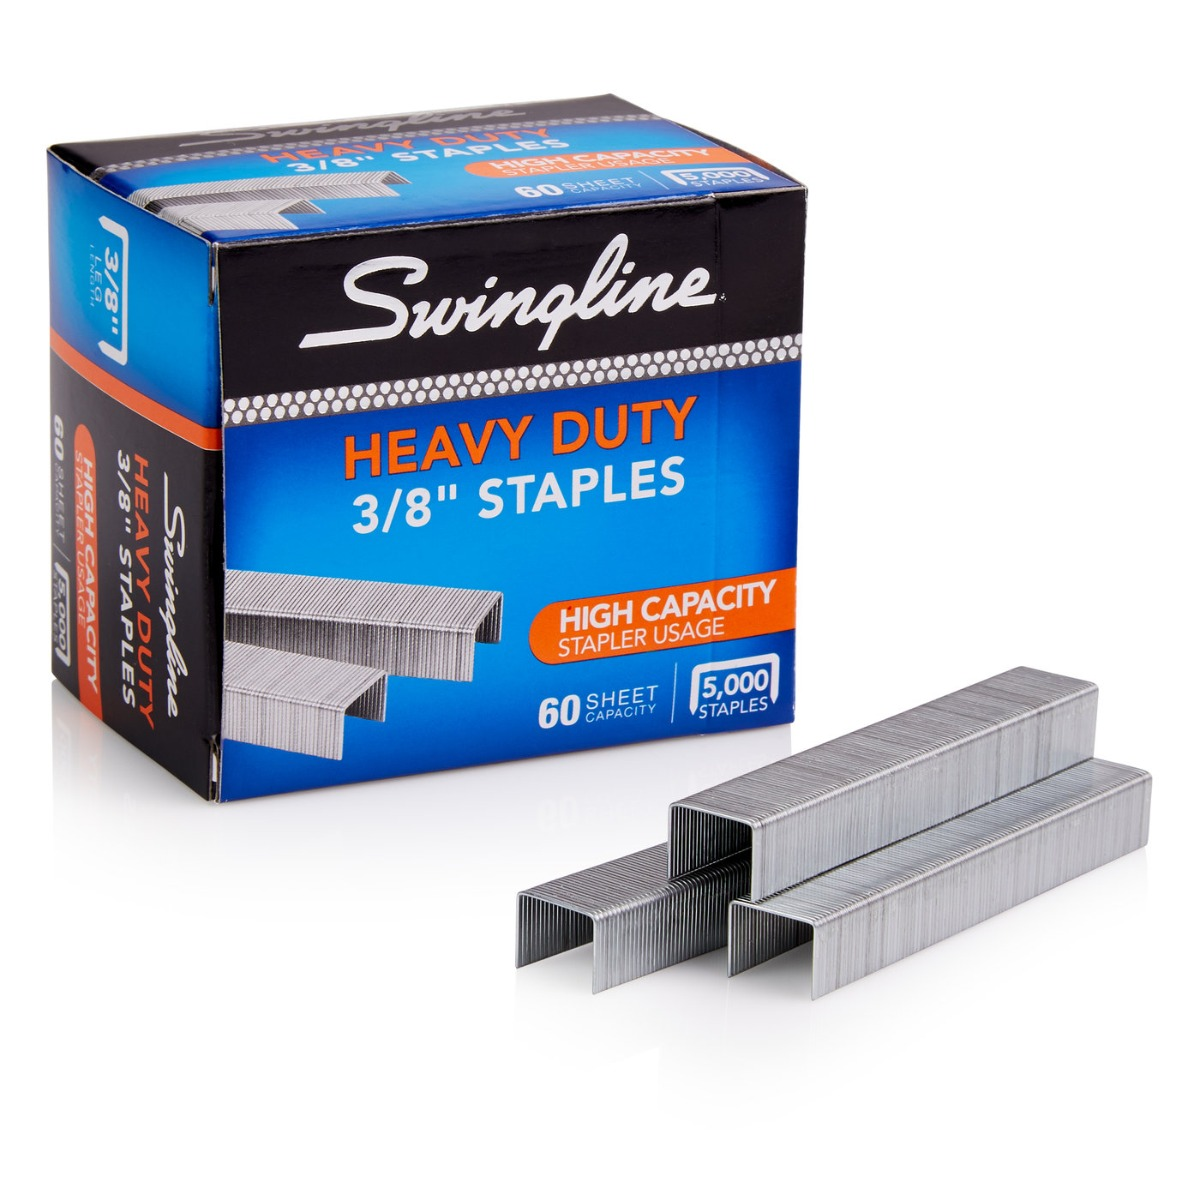 "Swingline S.F. 39 Heavy Duty 3/8"" Staples 5000pk - 79398E (SWI-79398) Image 1"